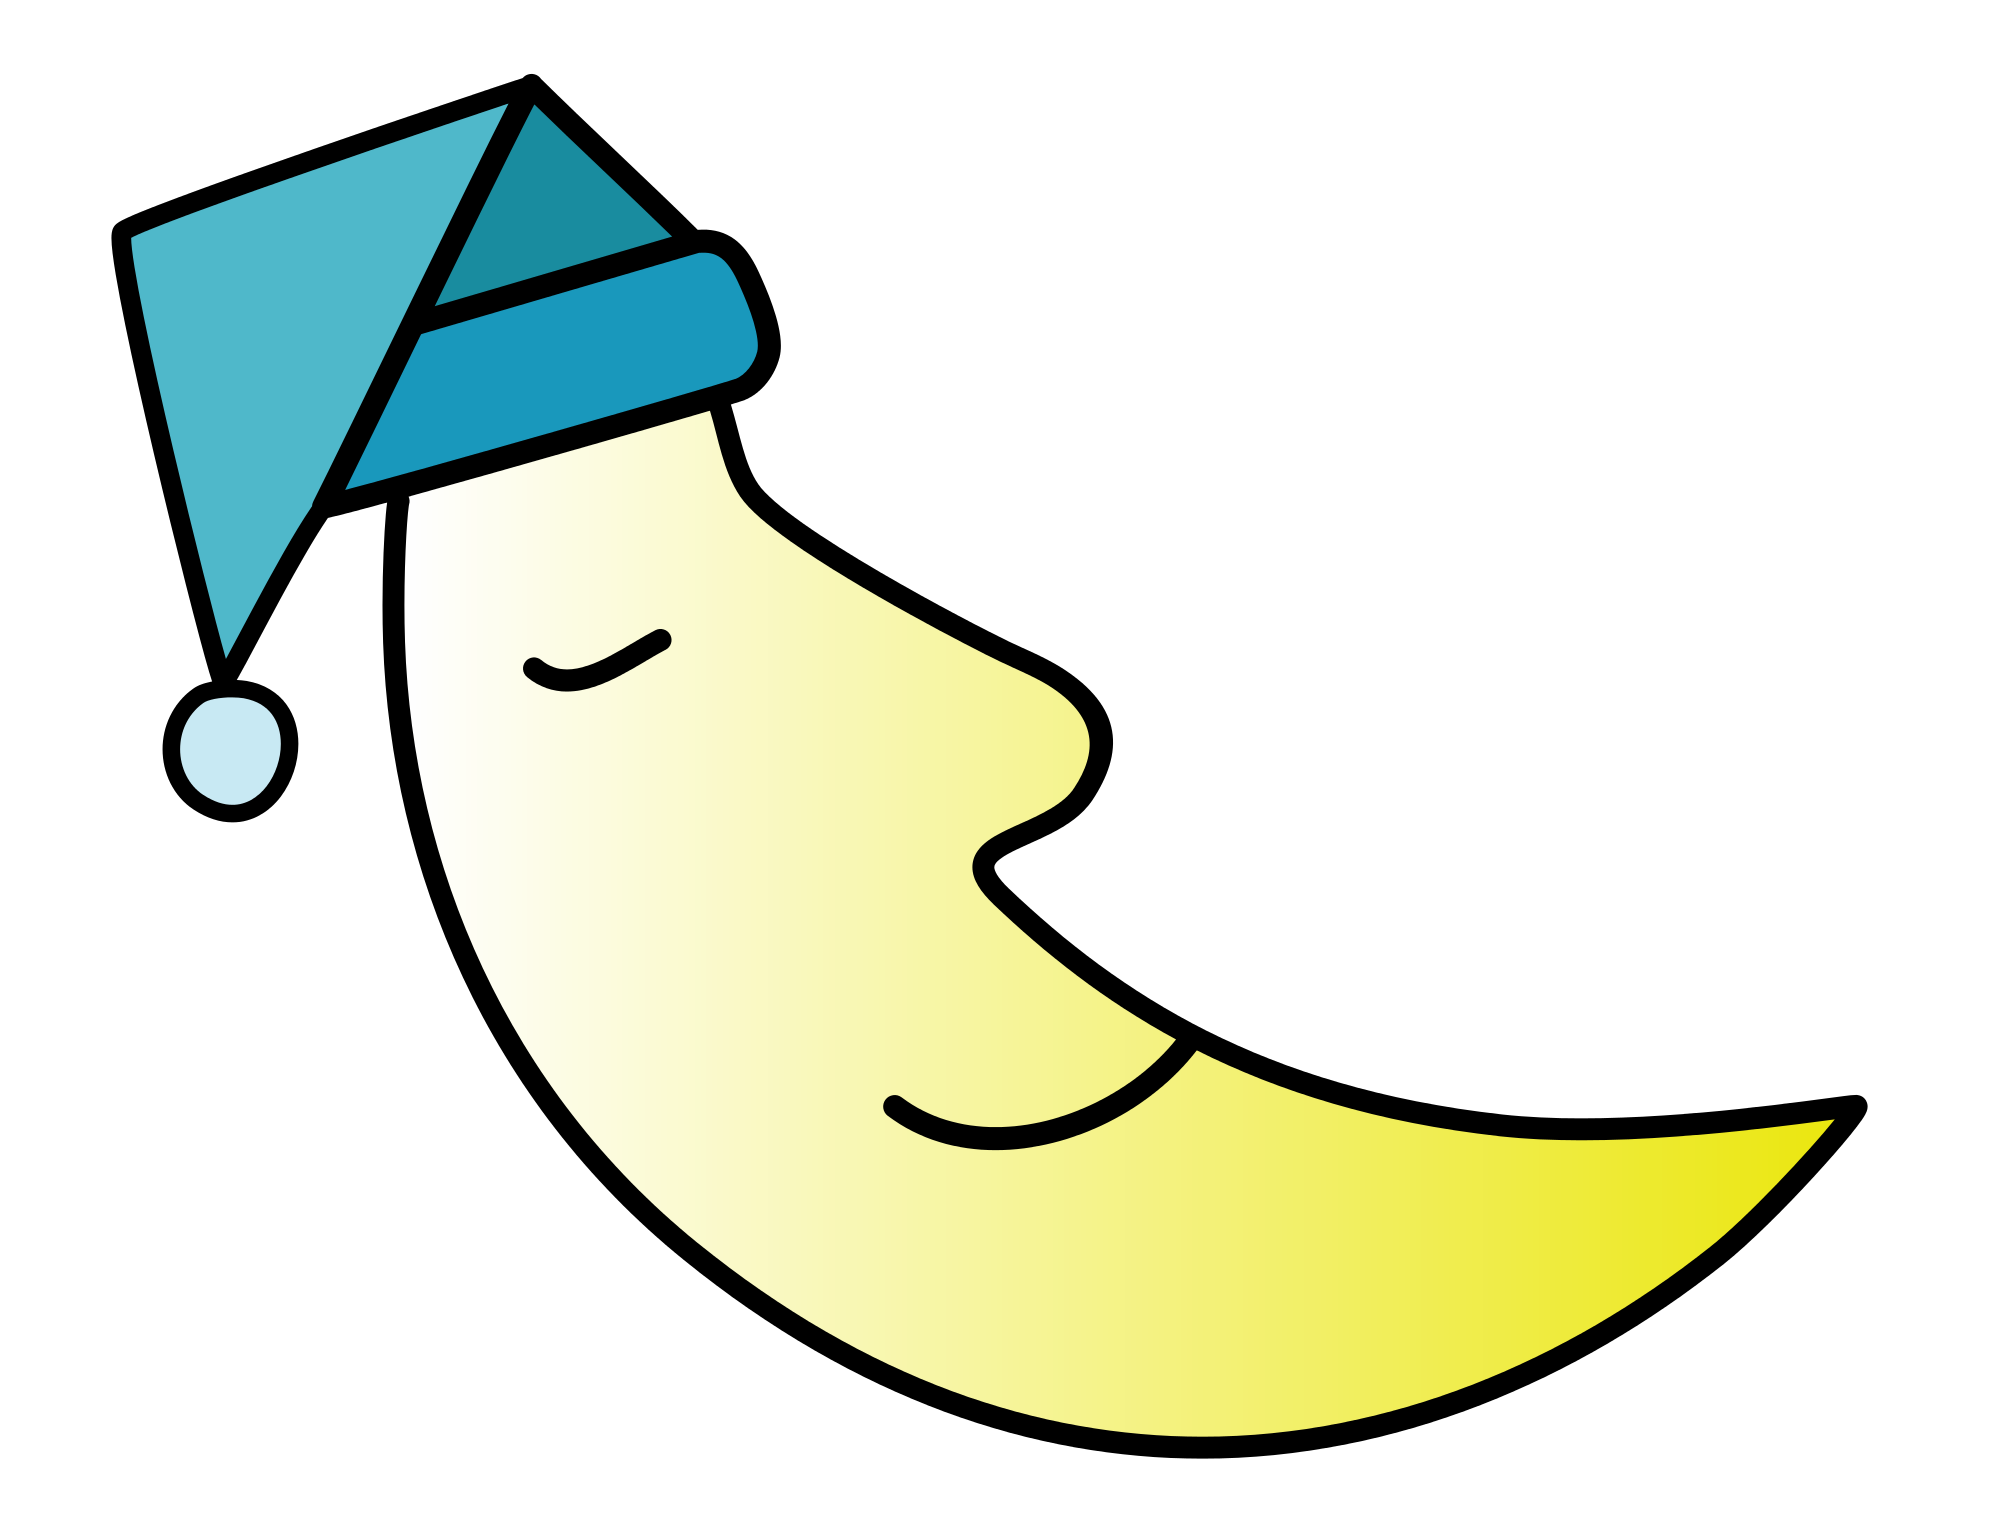 Bedtime clipart sleep hygiene. Answers to commonly unanswered